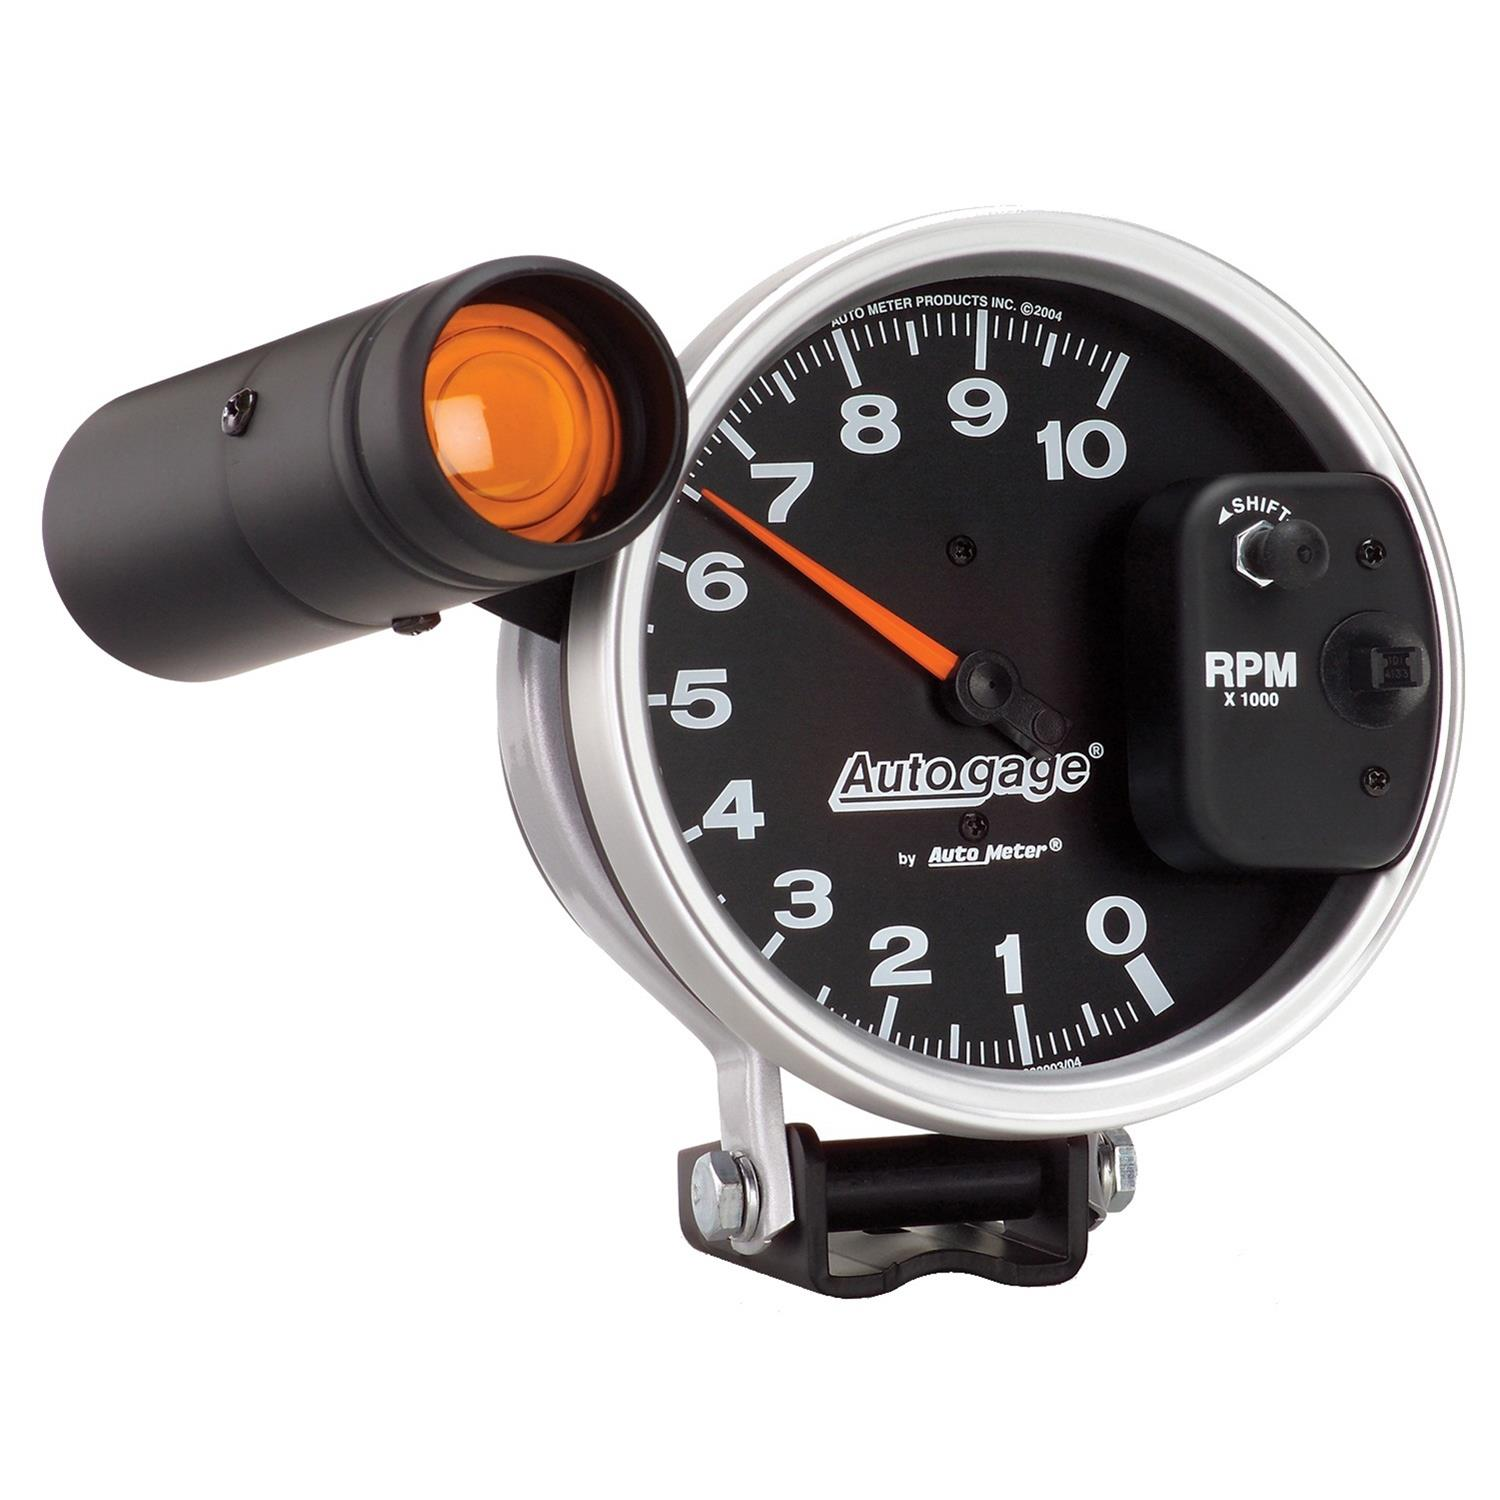 Autogage Monster Shift-Lite Tachometers 233904 - Free Shipping on Orders  Over $49 at Summit Racing